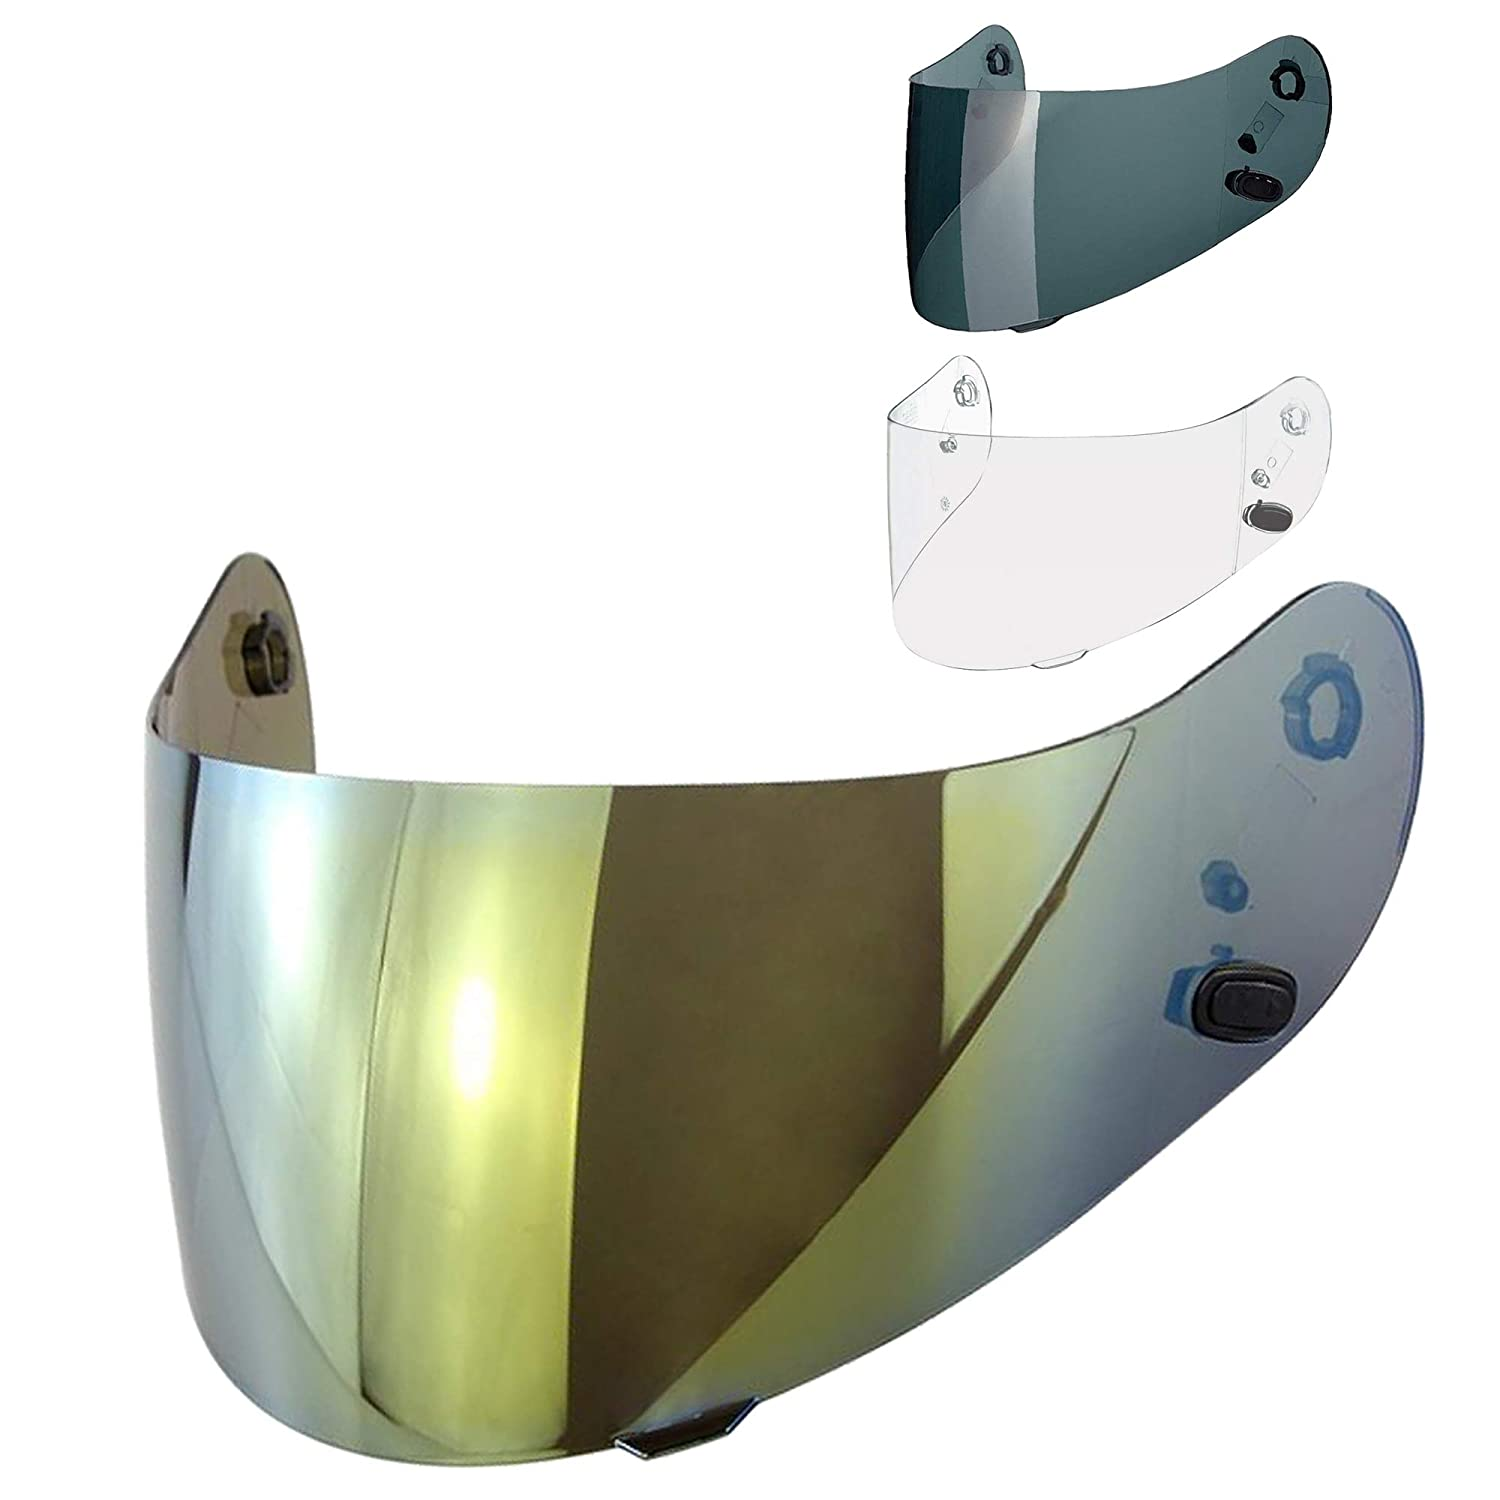 HJC HJ-09 Shield Visor Gold for FS-10 FS-15 CL-16 IS-16 FG-15 FS-11 CL-ST 2 II